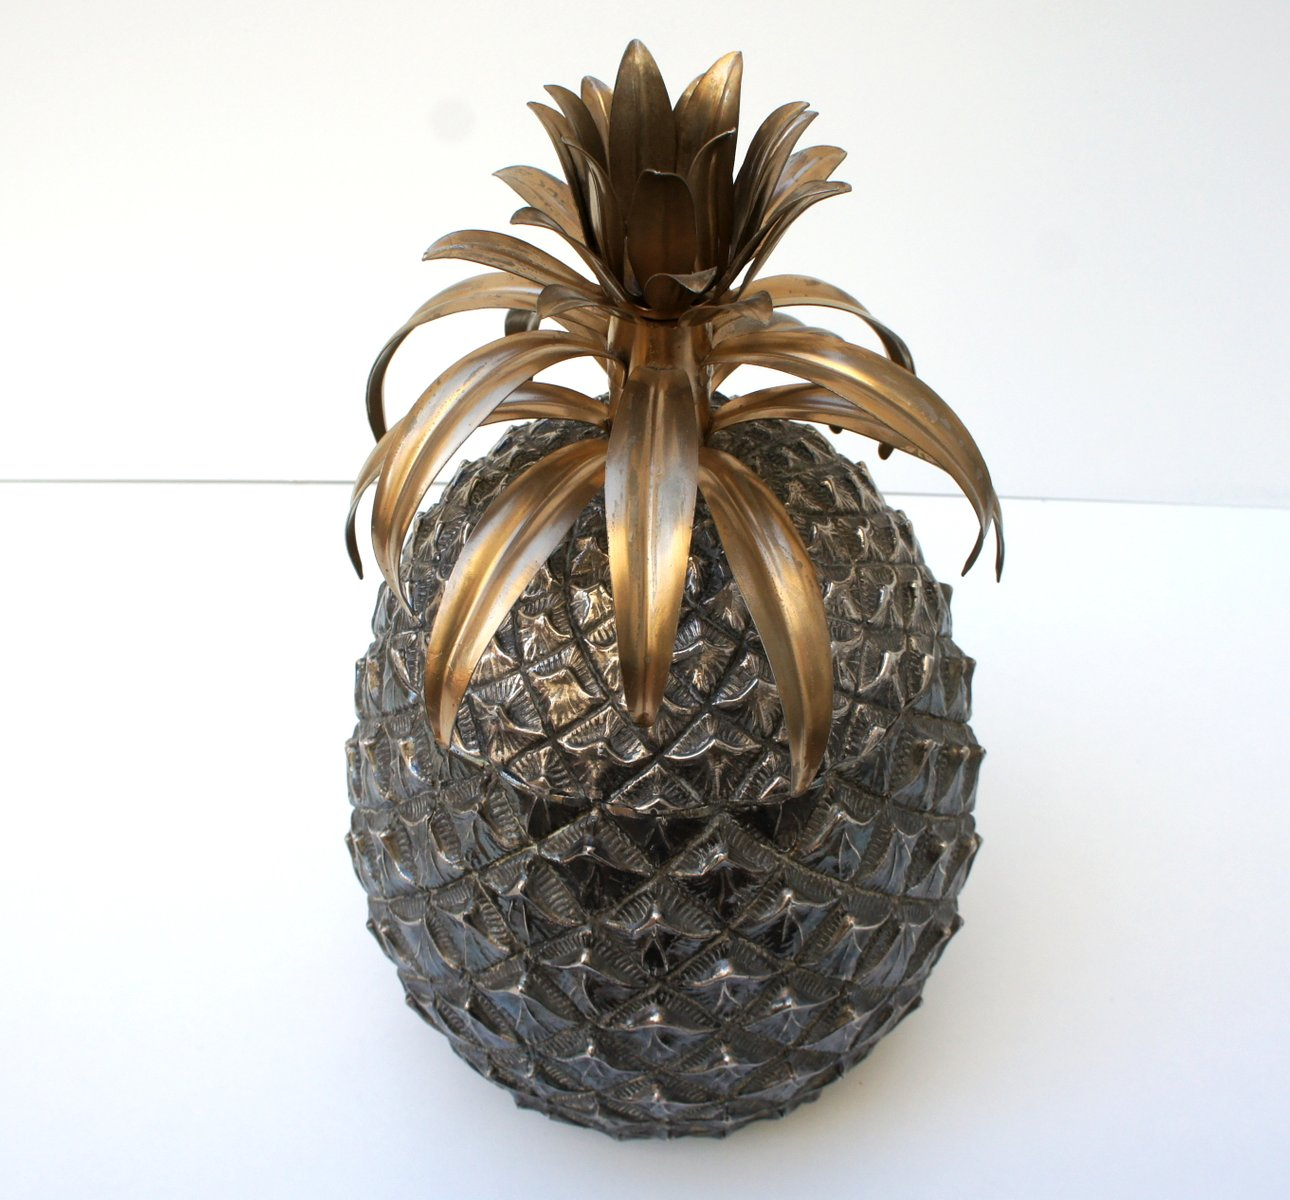 Italian Silver Pineapple Ice Bucket by Mauro Manetti for Fonderia d'Arte,  1960s for sale at Pamono